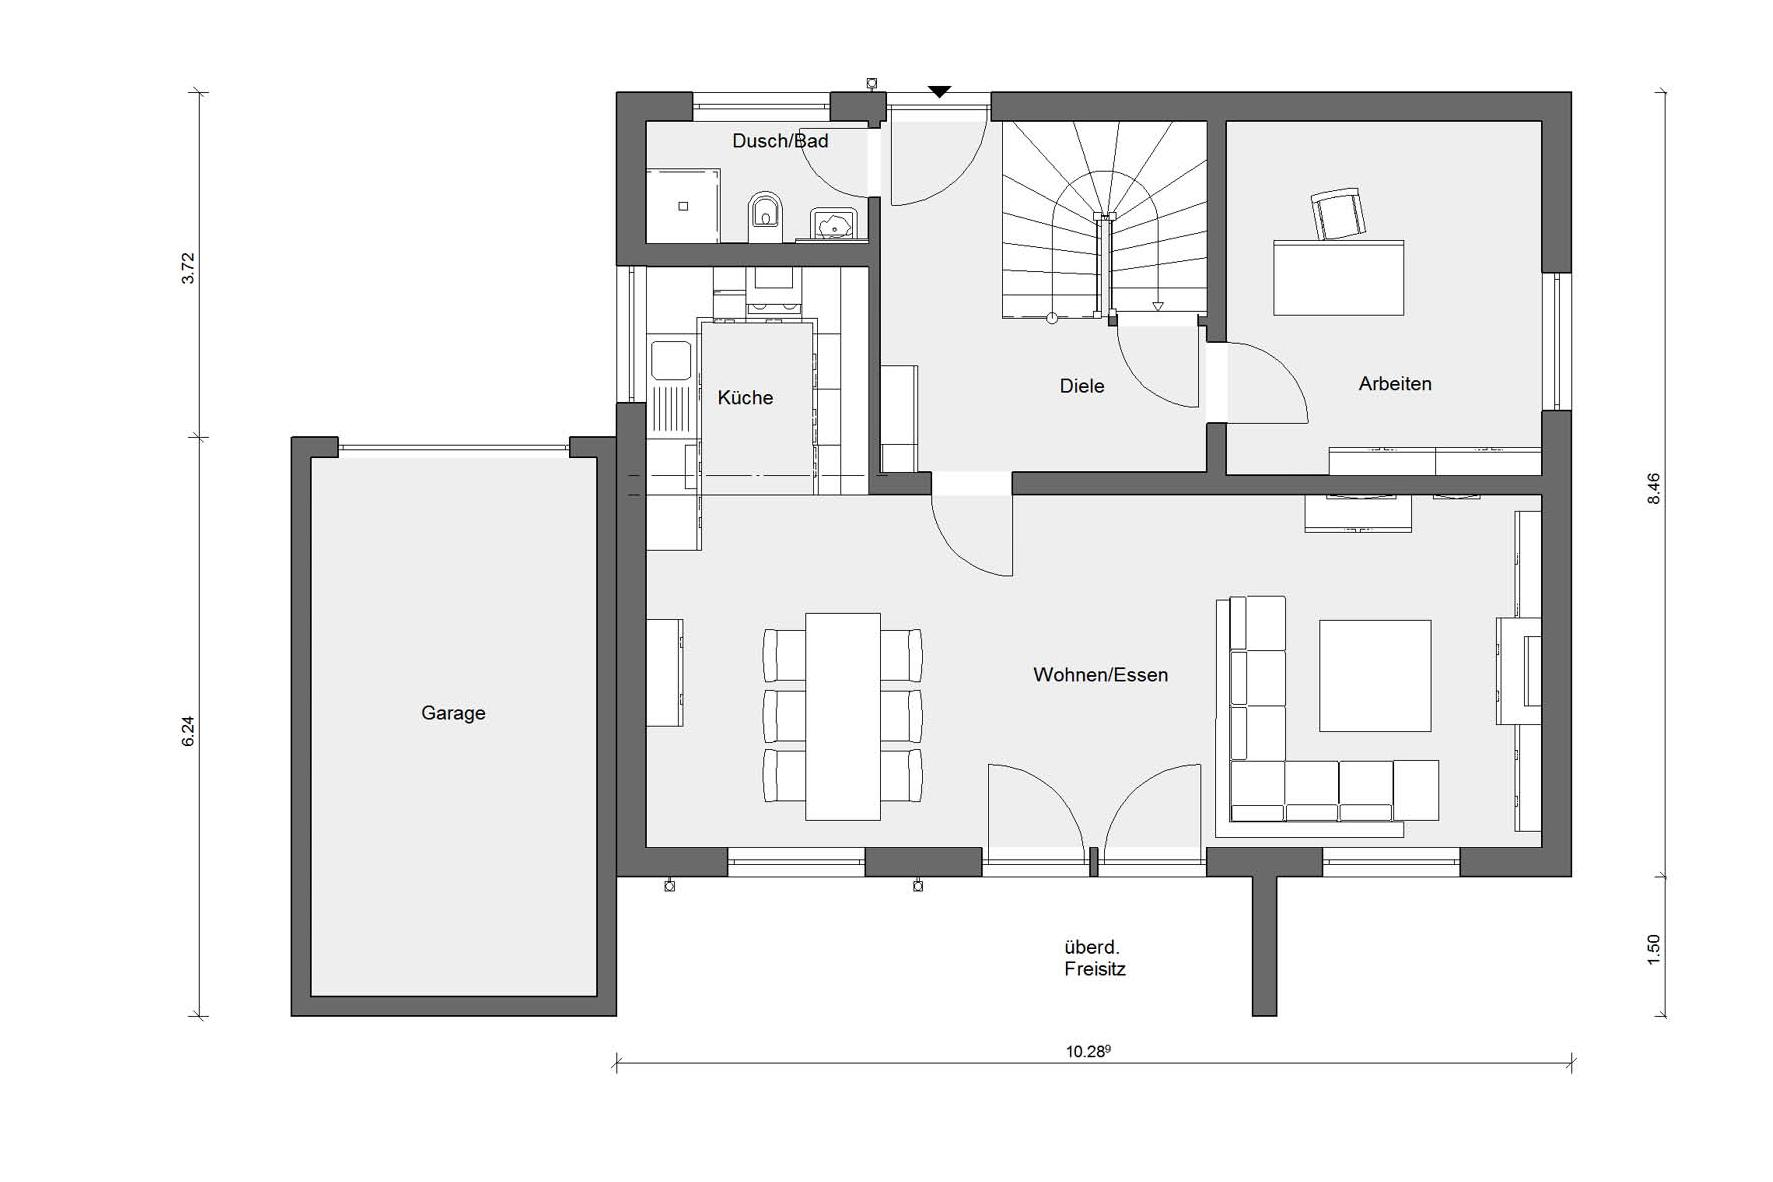 Ground floor plan E 20-144.2 Modern Bauhaus style